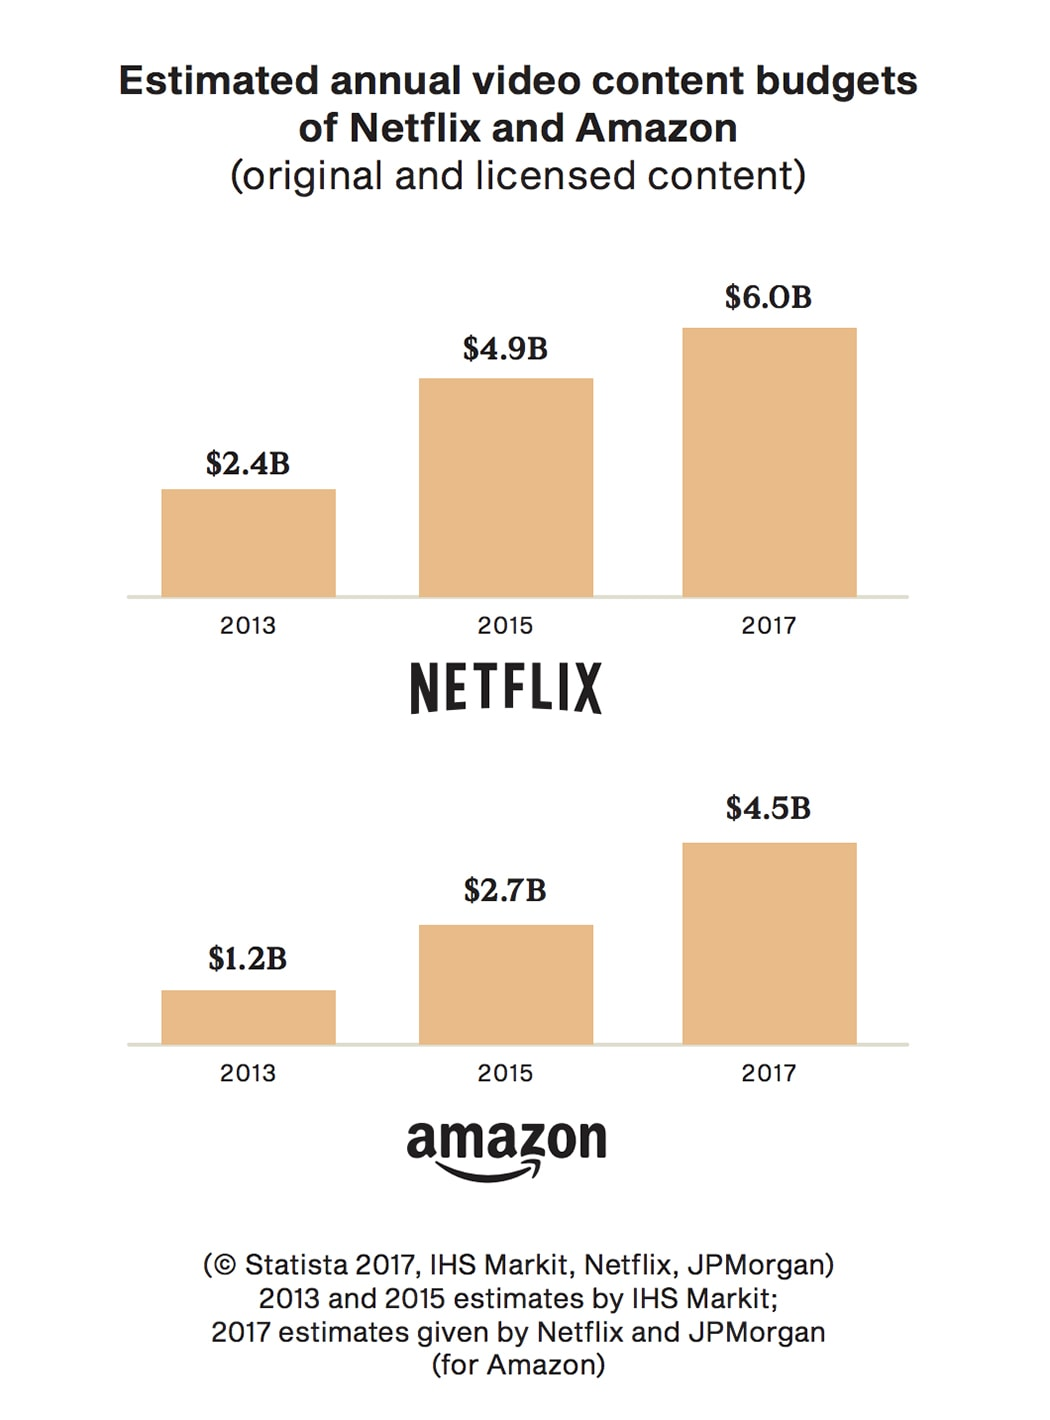 Estimated annual video content budgets of Netflix and Amazon